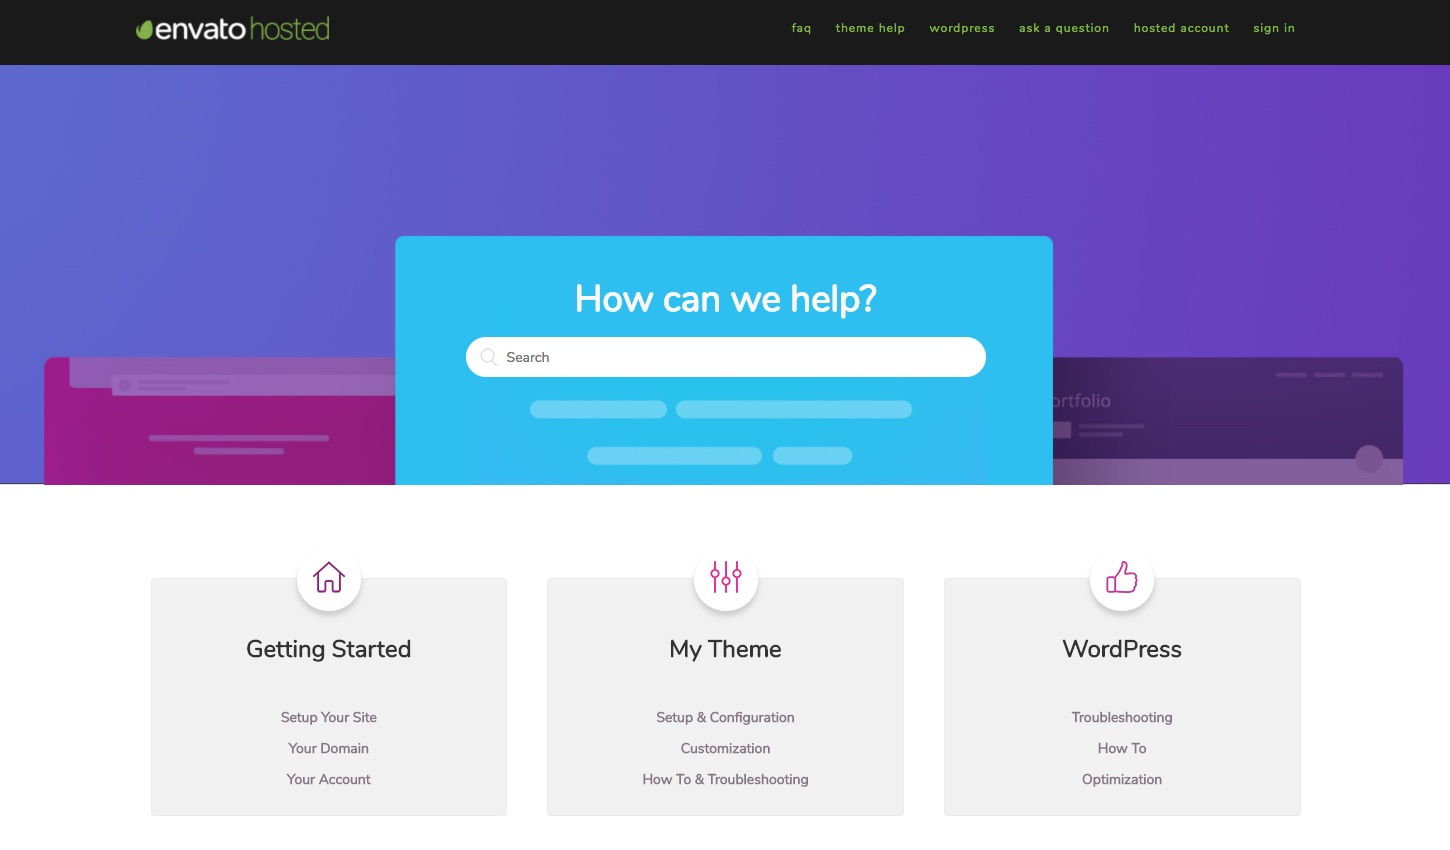 Envato Hosted Support